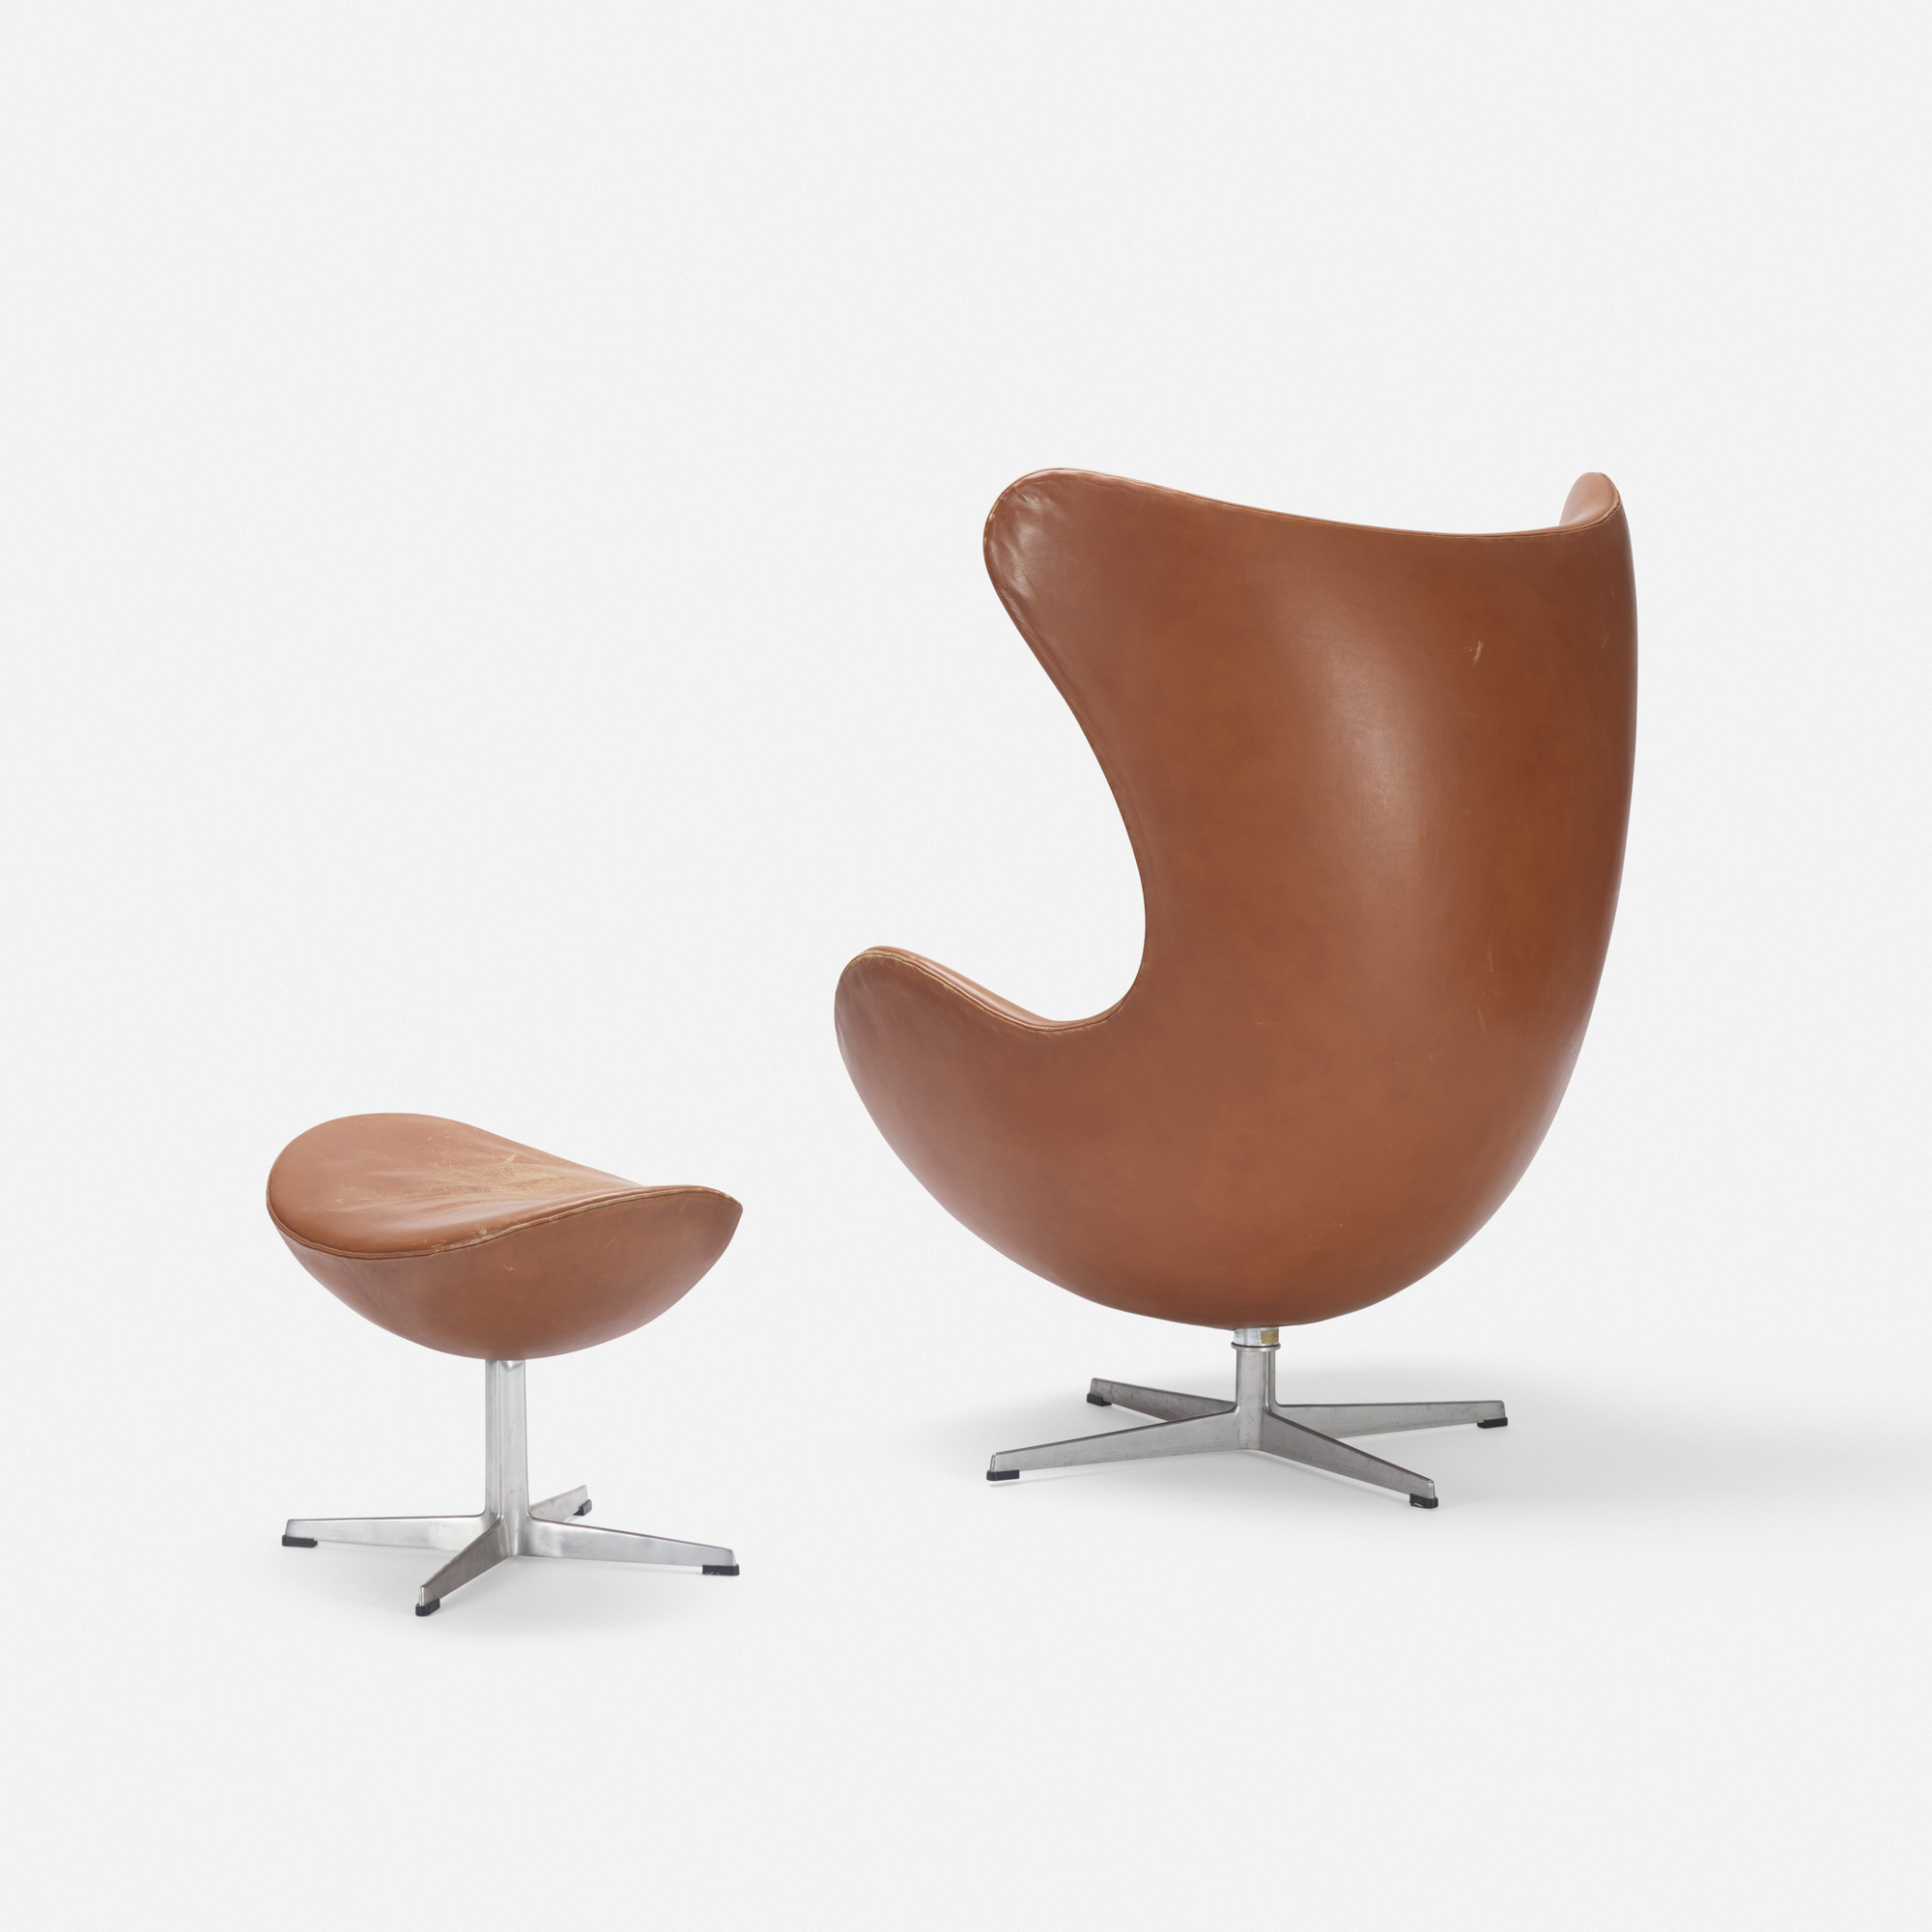 163: Arne Jacobsen / Egg chair and ottoman (3 of 3)